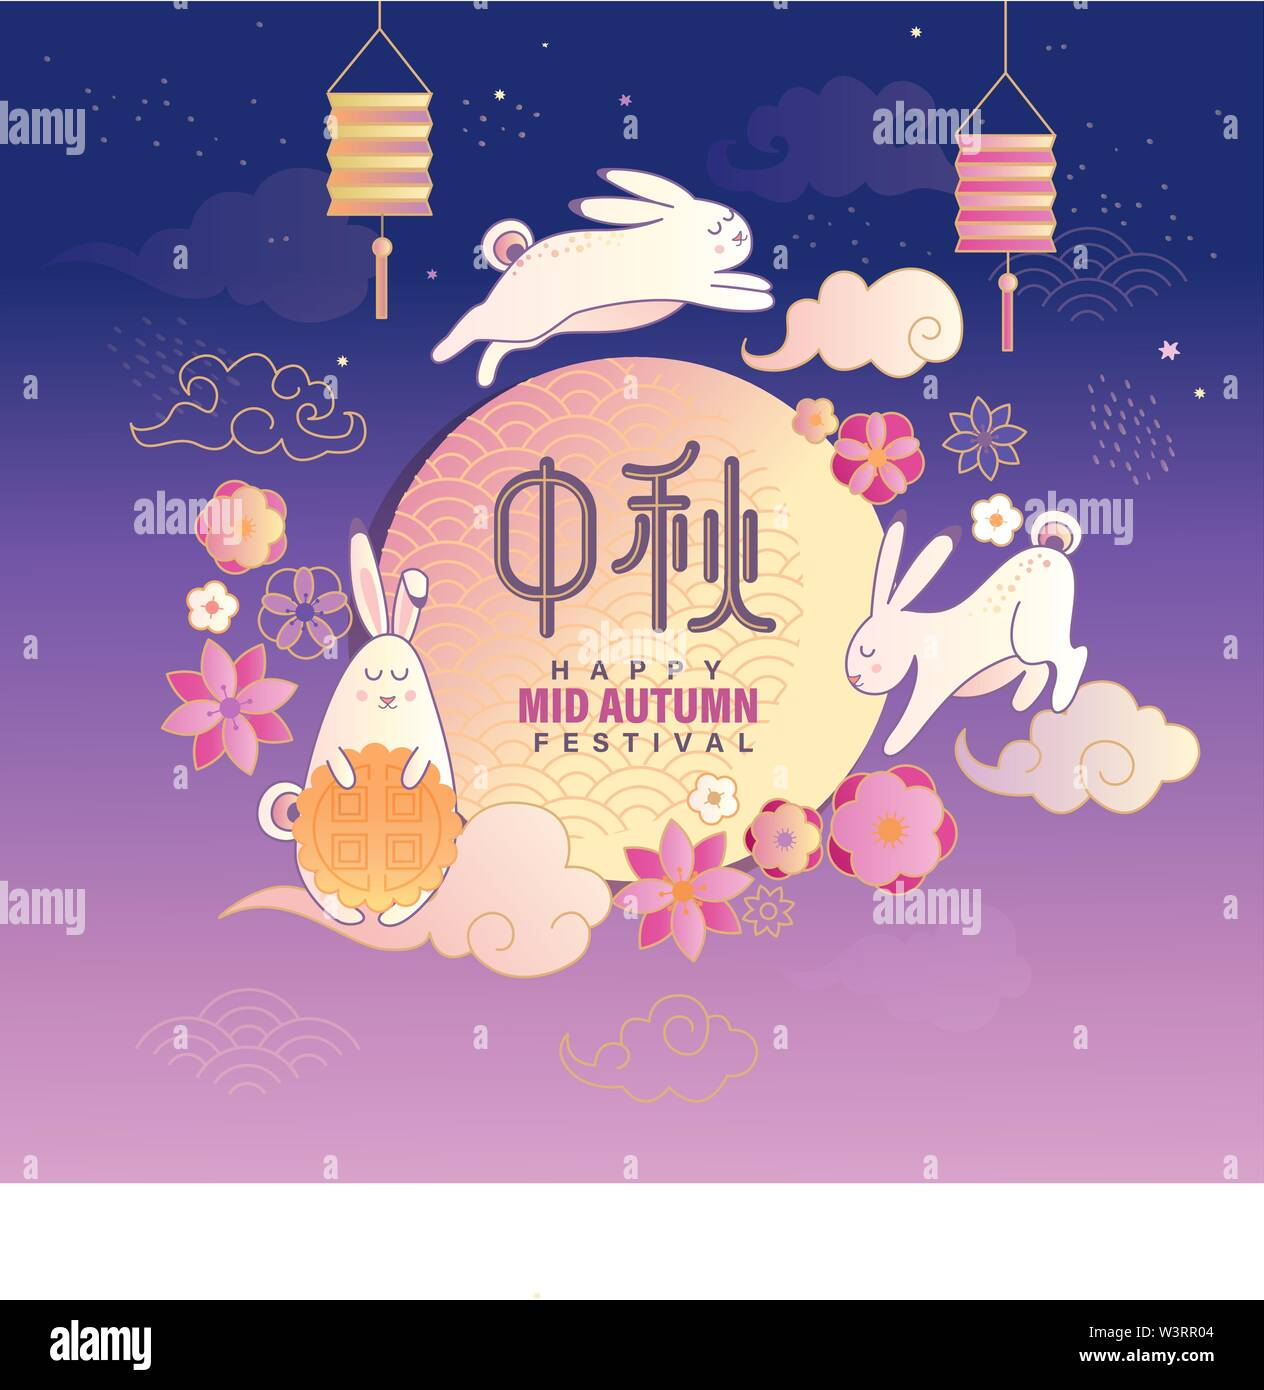 Mid Autumn Festival banner for chinese holiday. - Stock Image